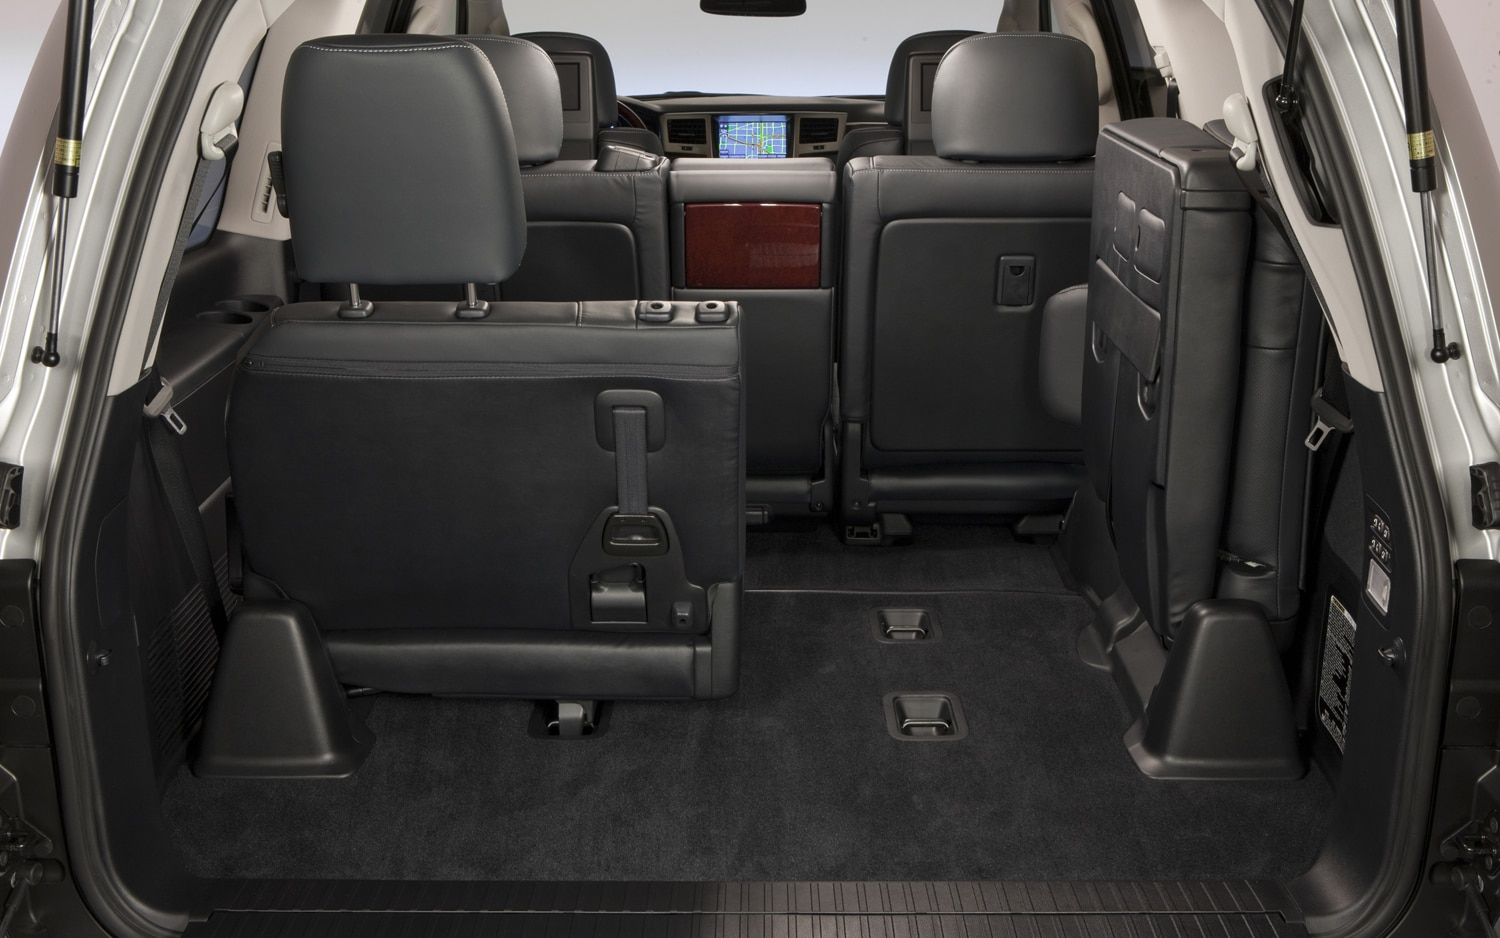 2013 Lexus LX 570 Rear Interior With Seat Folded